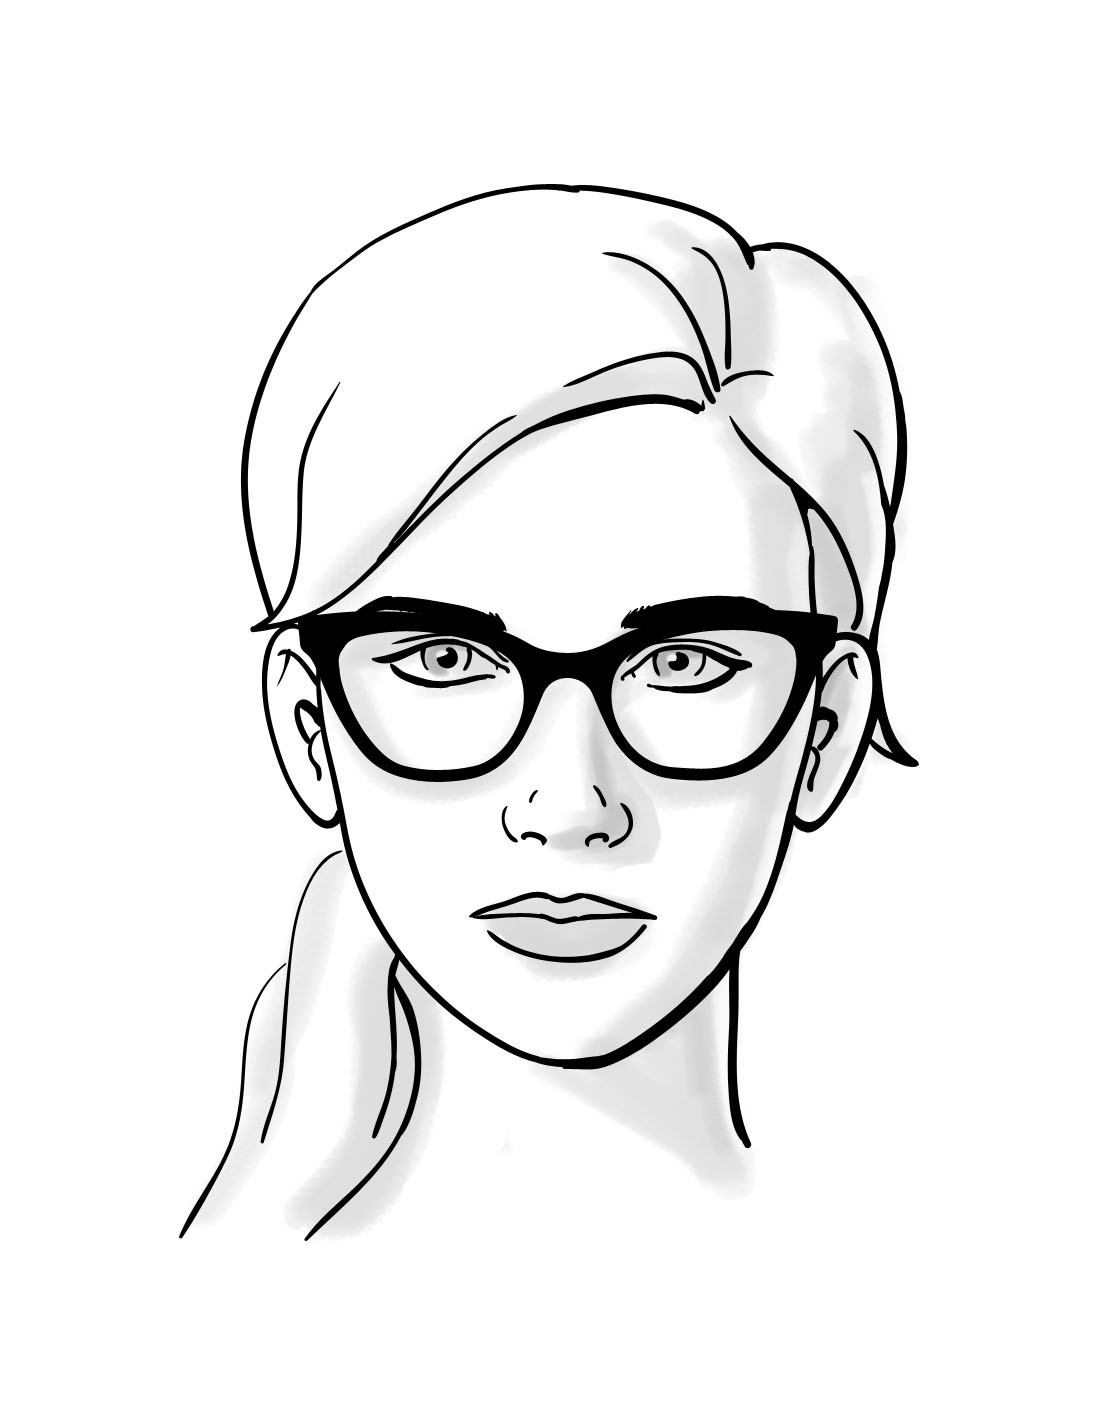 1100x1424 How To Choosing Glasses For Heart Face Shapes Thelook Clearly